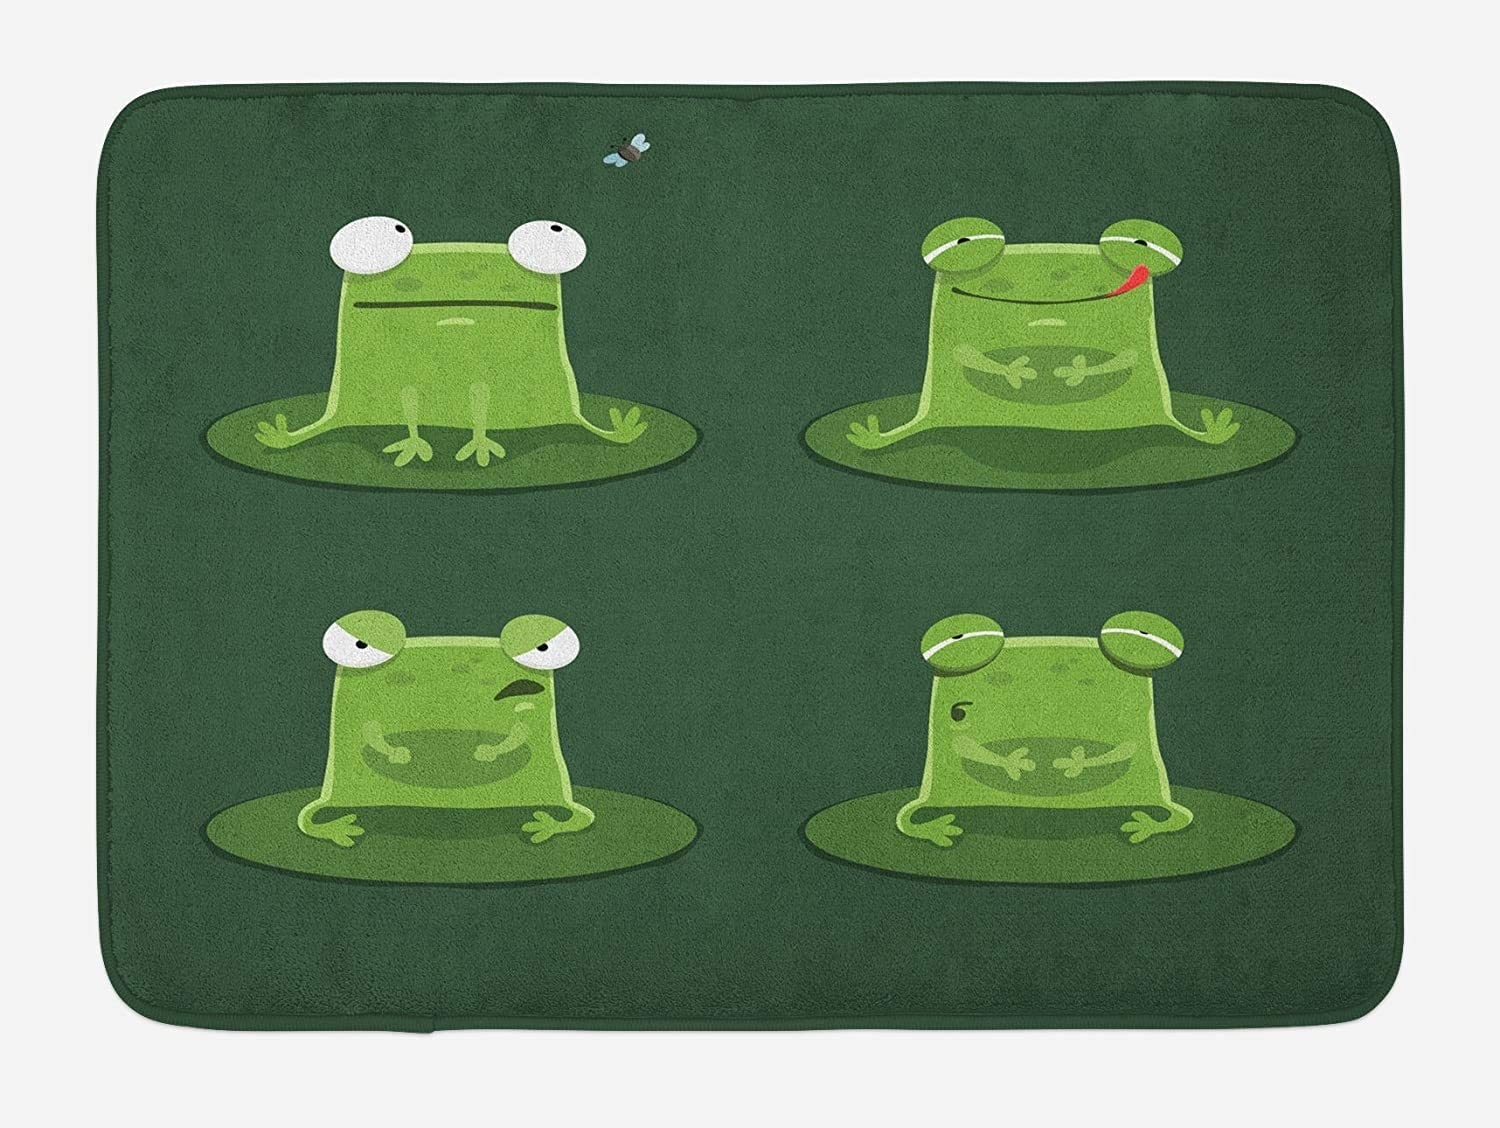 CdHBH Funny Bath Mat, Funny Muzzy Frog on Lily Pad in Pond Hunting Tasty Fly Expressions Cartoon Animal, Plush Bathroom Decor Mat with Non Slip Backing, 15.7